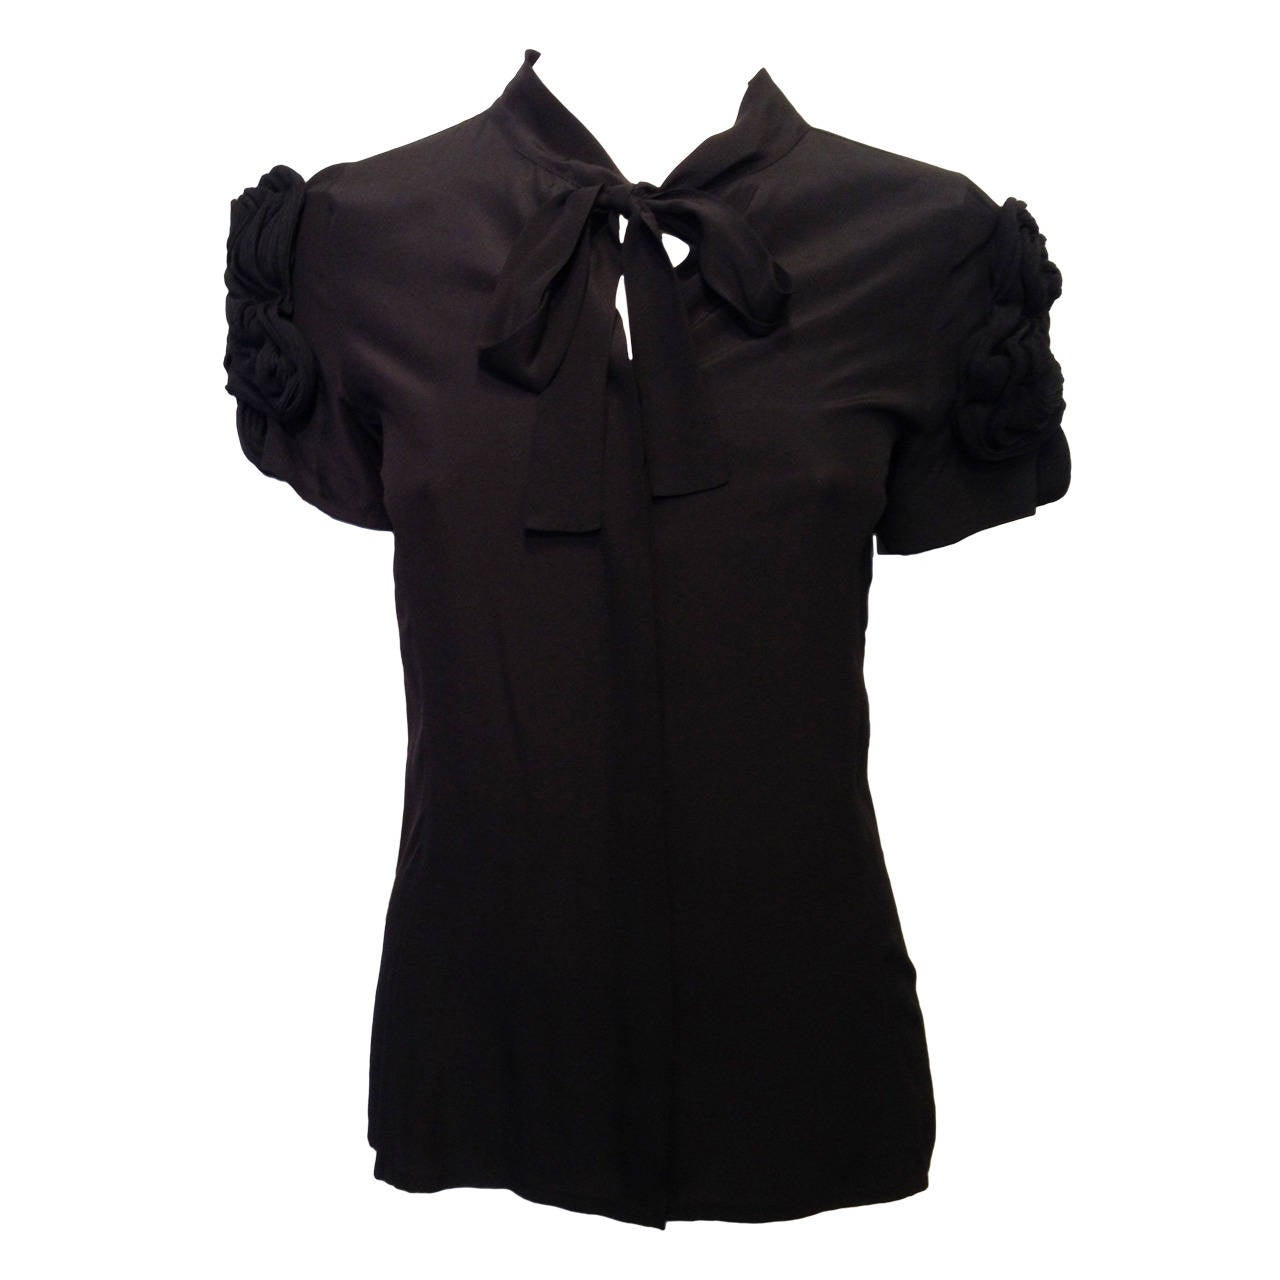 Fendi Black Silk Blouse with Braided Shoulders 1